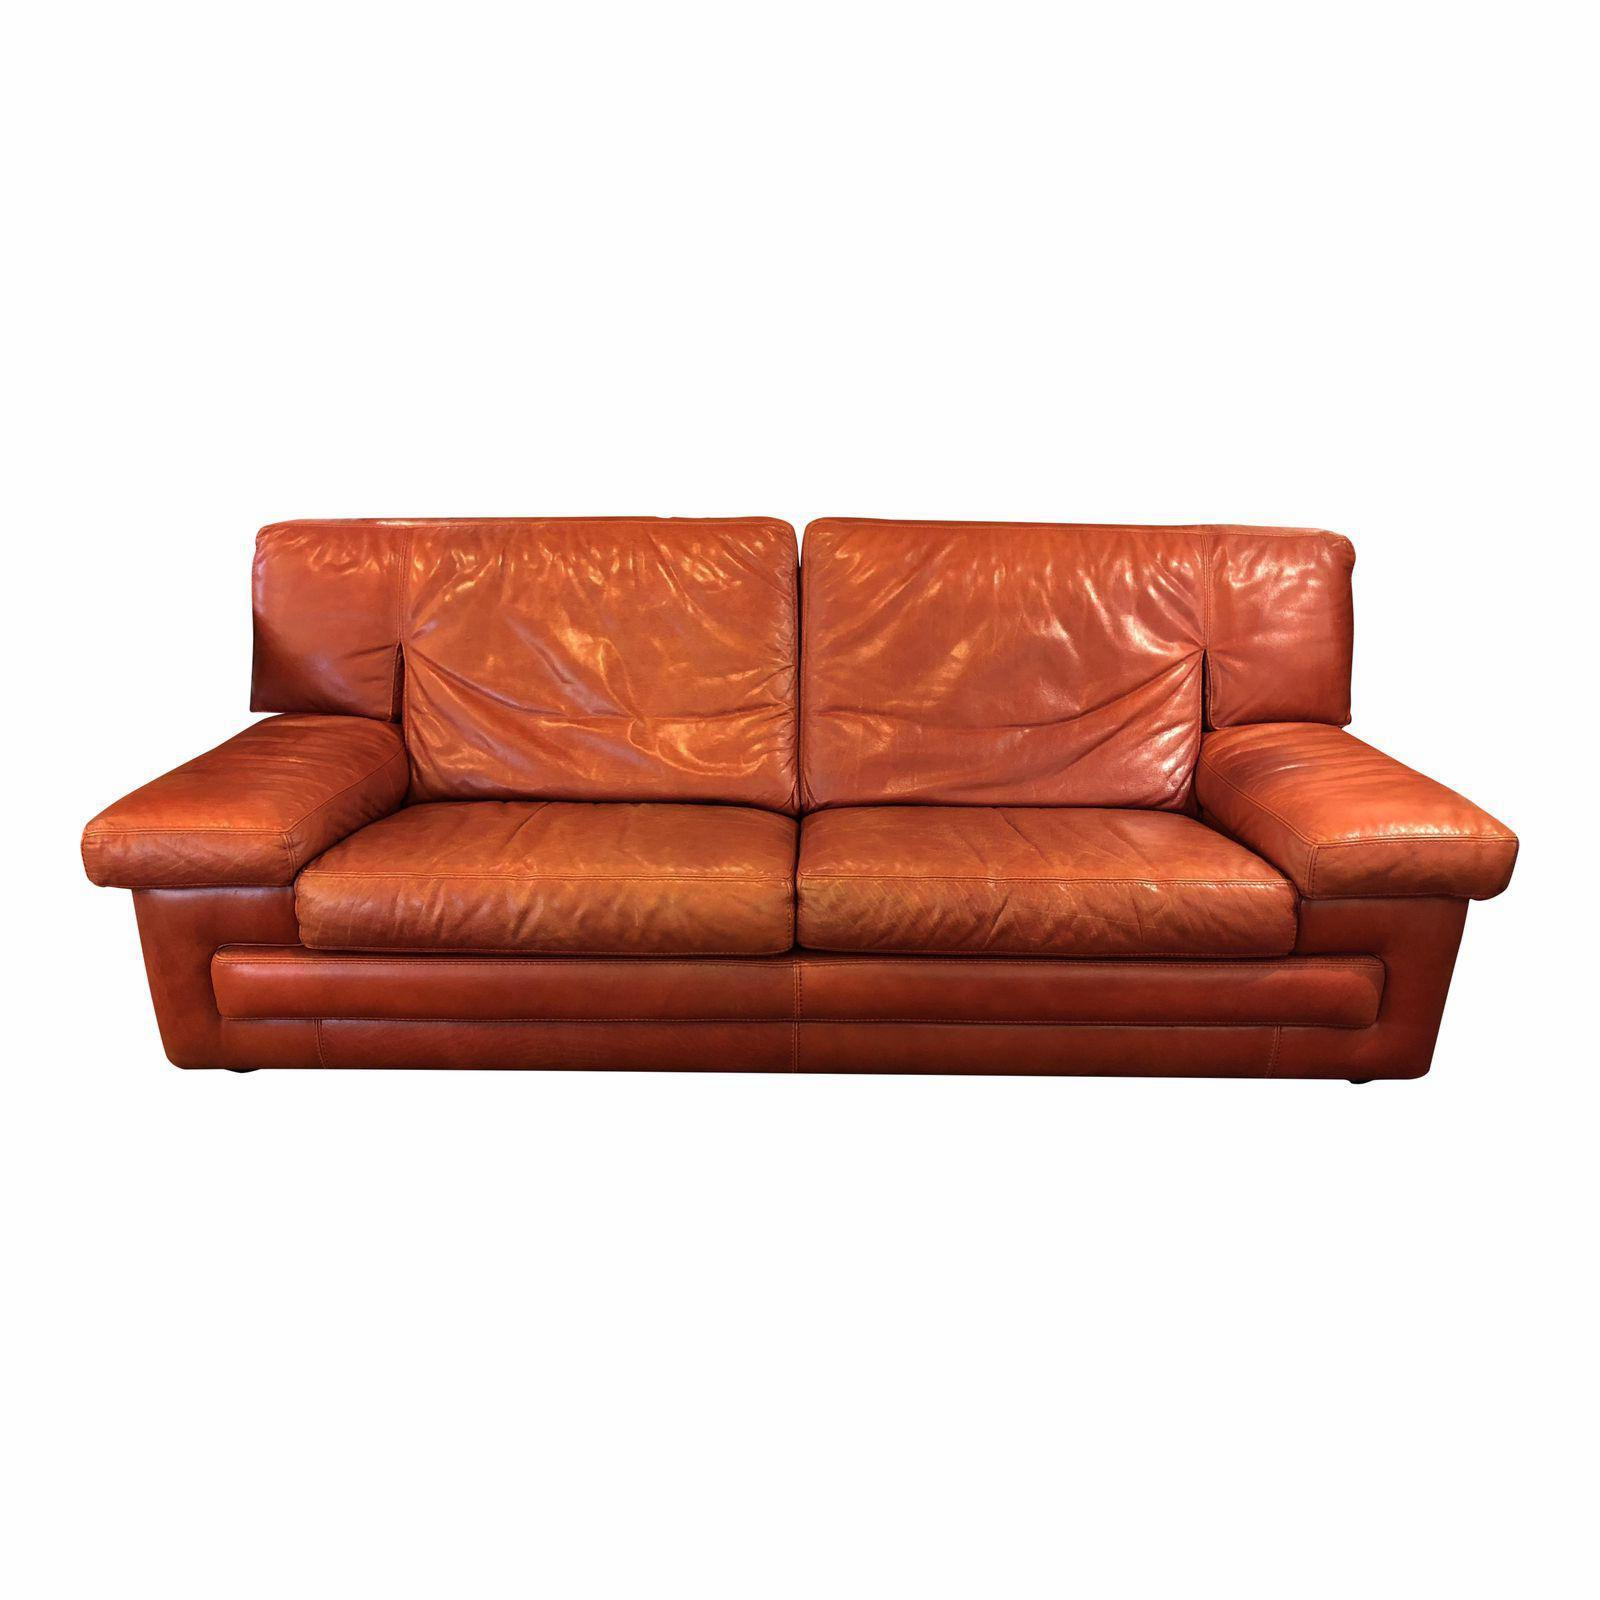 roche bobois vintage red leather sofa original price 4 design plus gallery. Black Bedroom Furniture Sets. Home Design Ideas